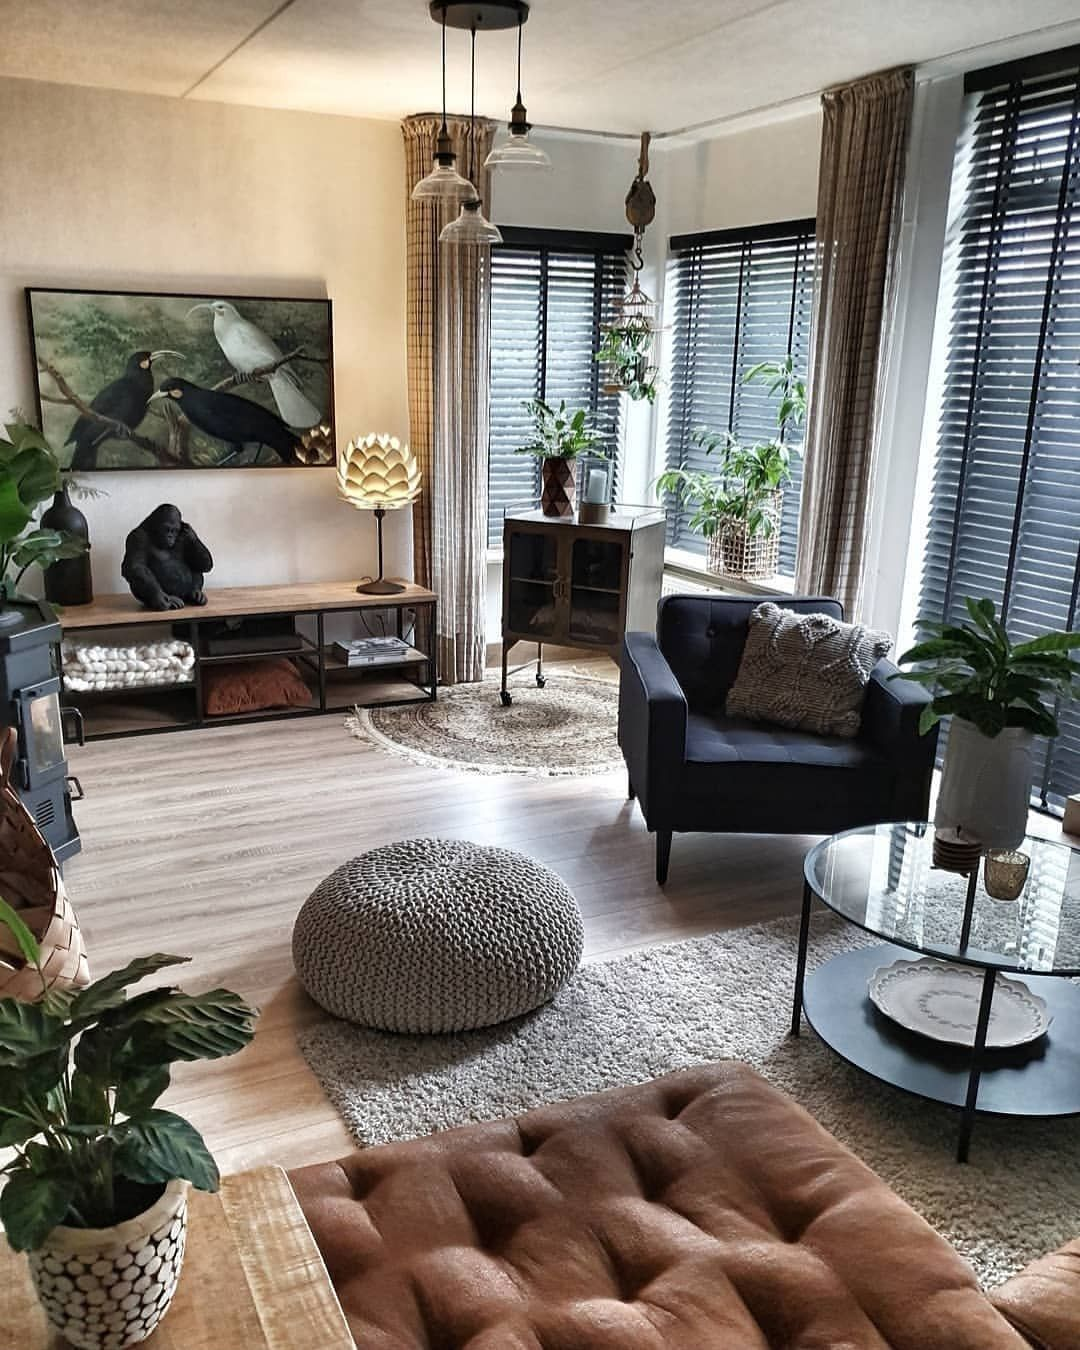 Home Decor Design On Instagram Looking For Interior Inspiration This Is Another Great Example Of A Well Decorated Living Ar Well Decor Interior Home Decor Well decorated living rooms